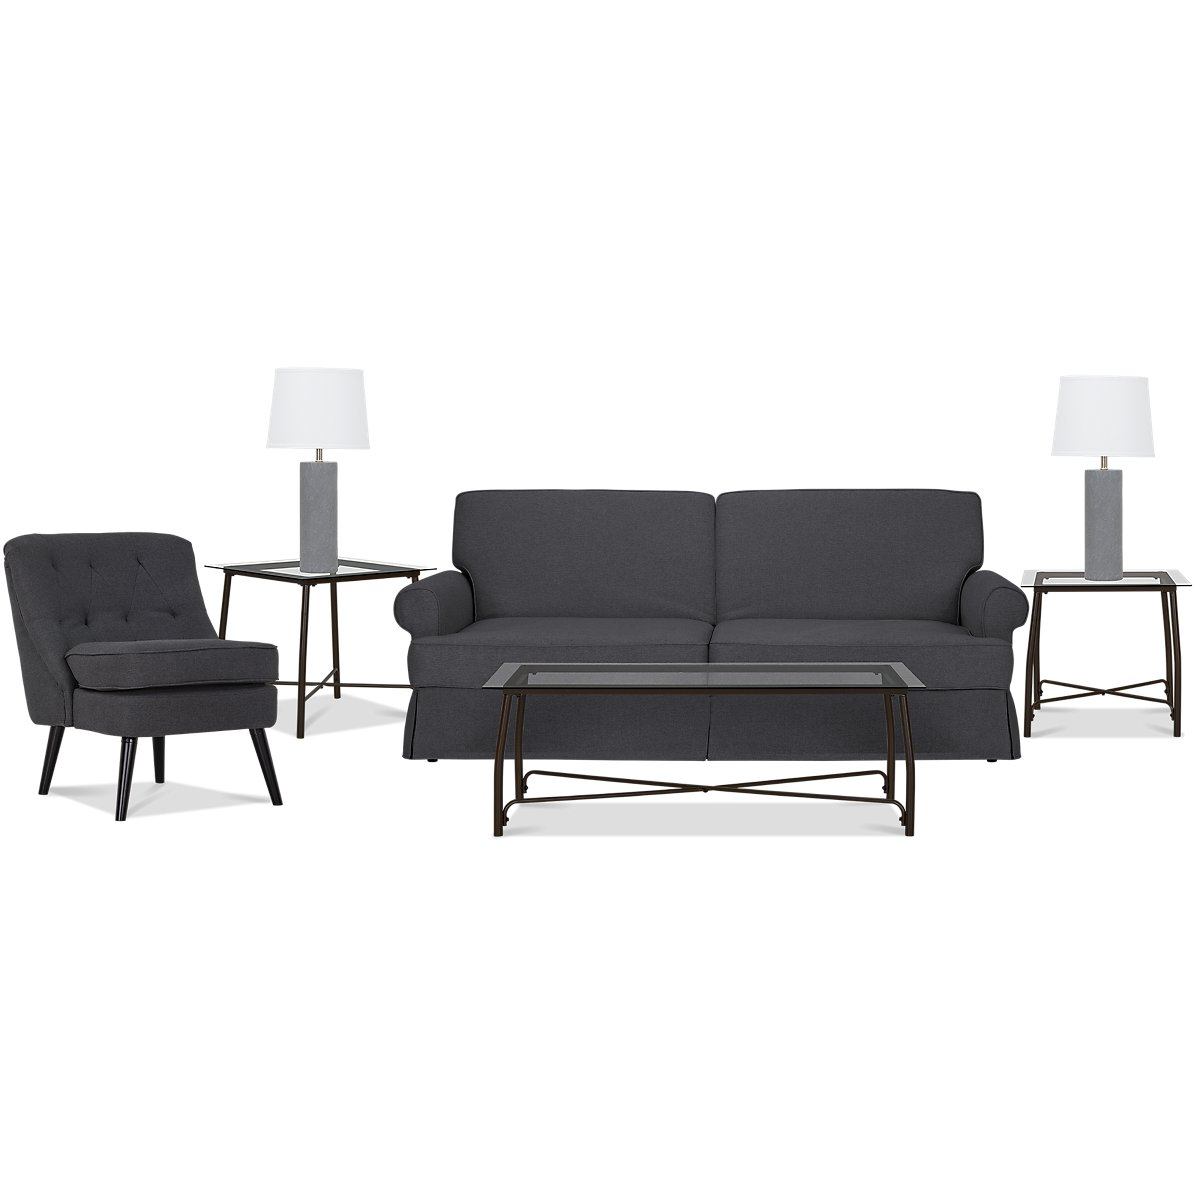 City Furniture: Owen Dark Gray 7-Piece Living Room Package